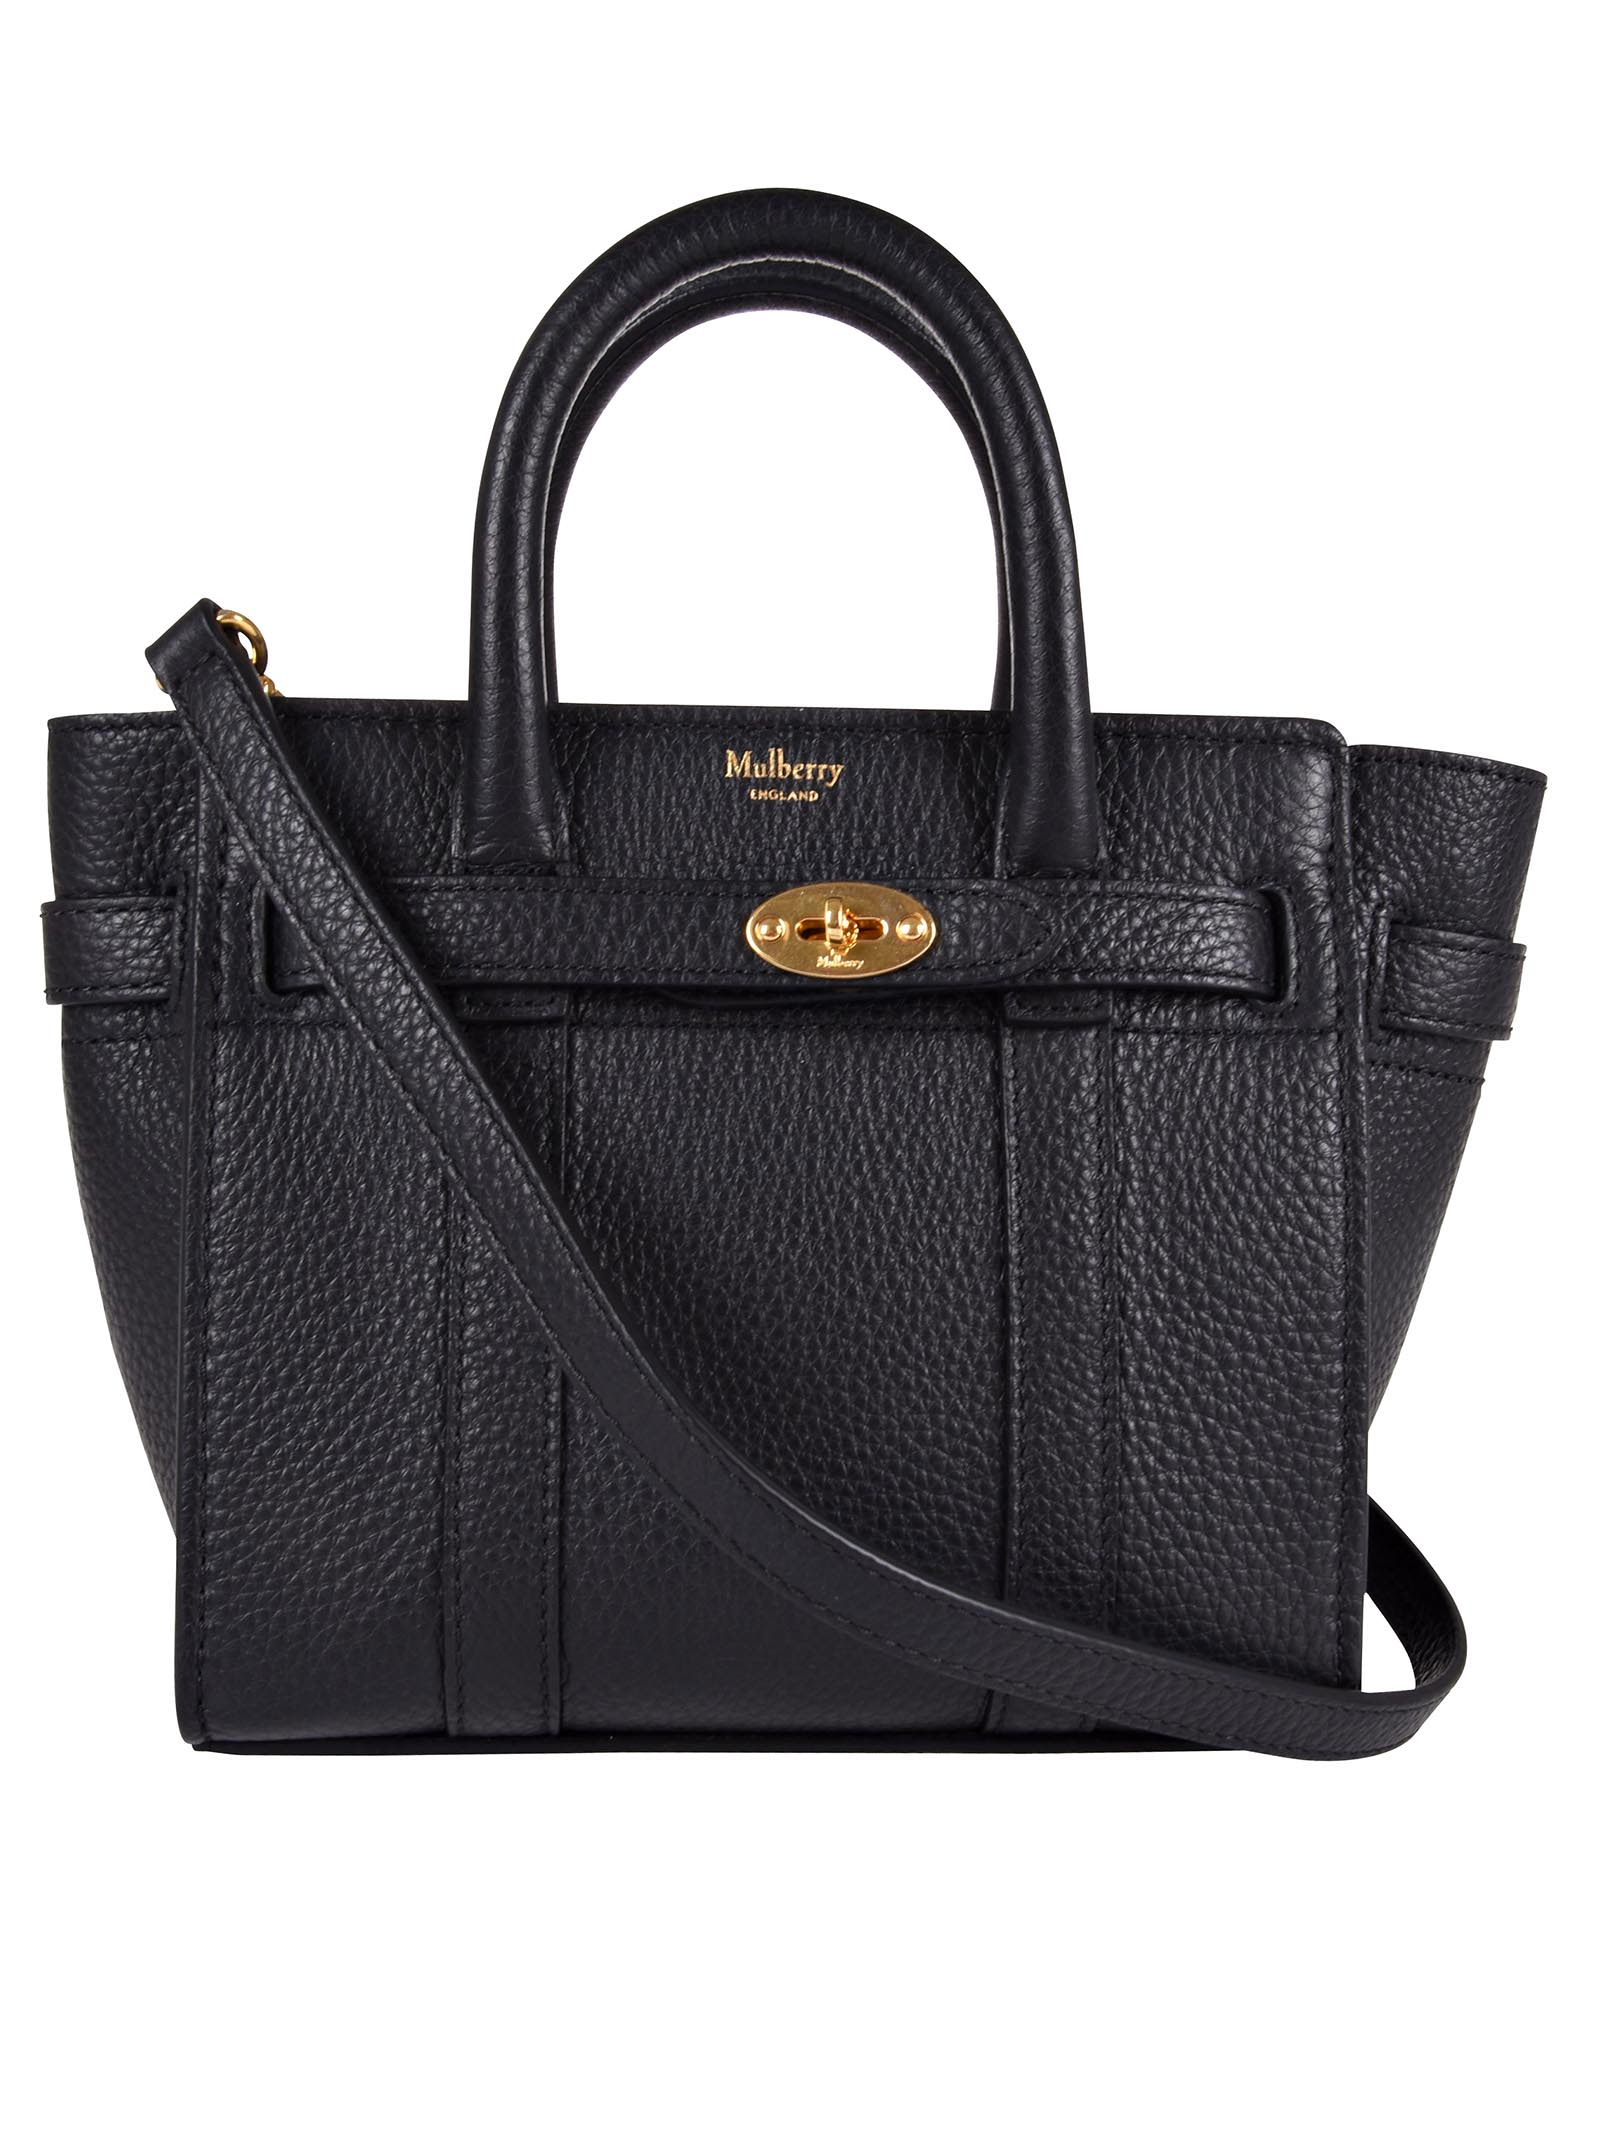 8e108abaa537 ... Mulberry Micro Zipped Bayswater Bag - Ablack ... finest selection c28da  323c5  Mulberry Shoulder ...